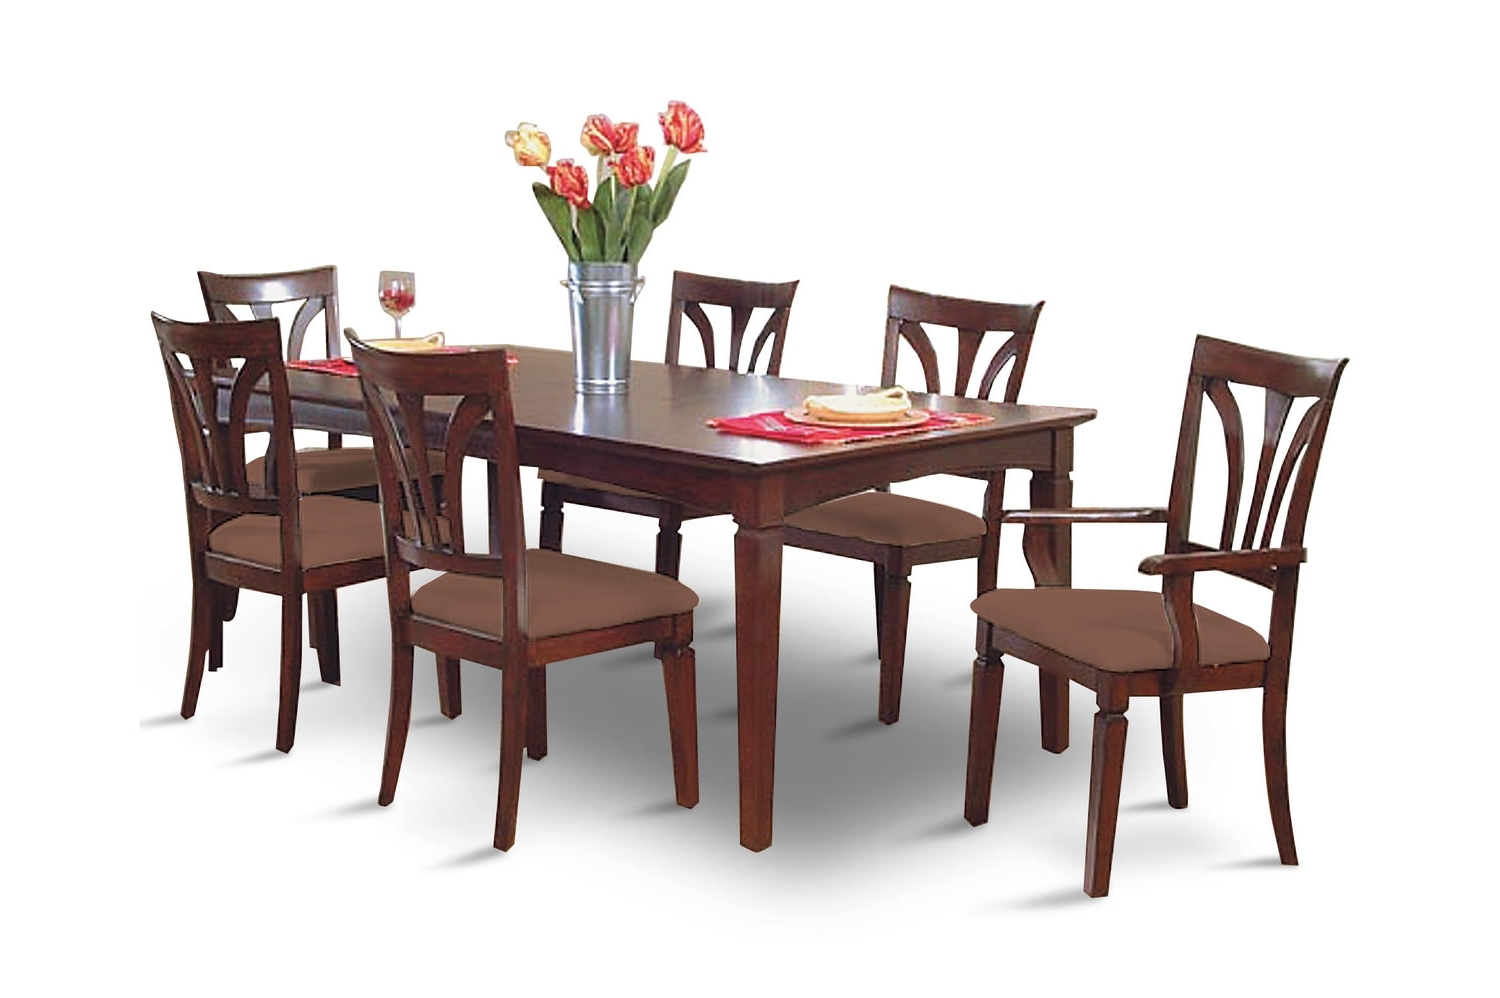 Chapleau Ii Side Chairs For Newest Dining Sets – Kitchen & Dining Room Sets – Hom Furniture (View 6 of 20)